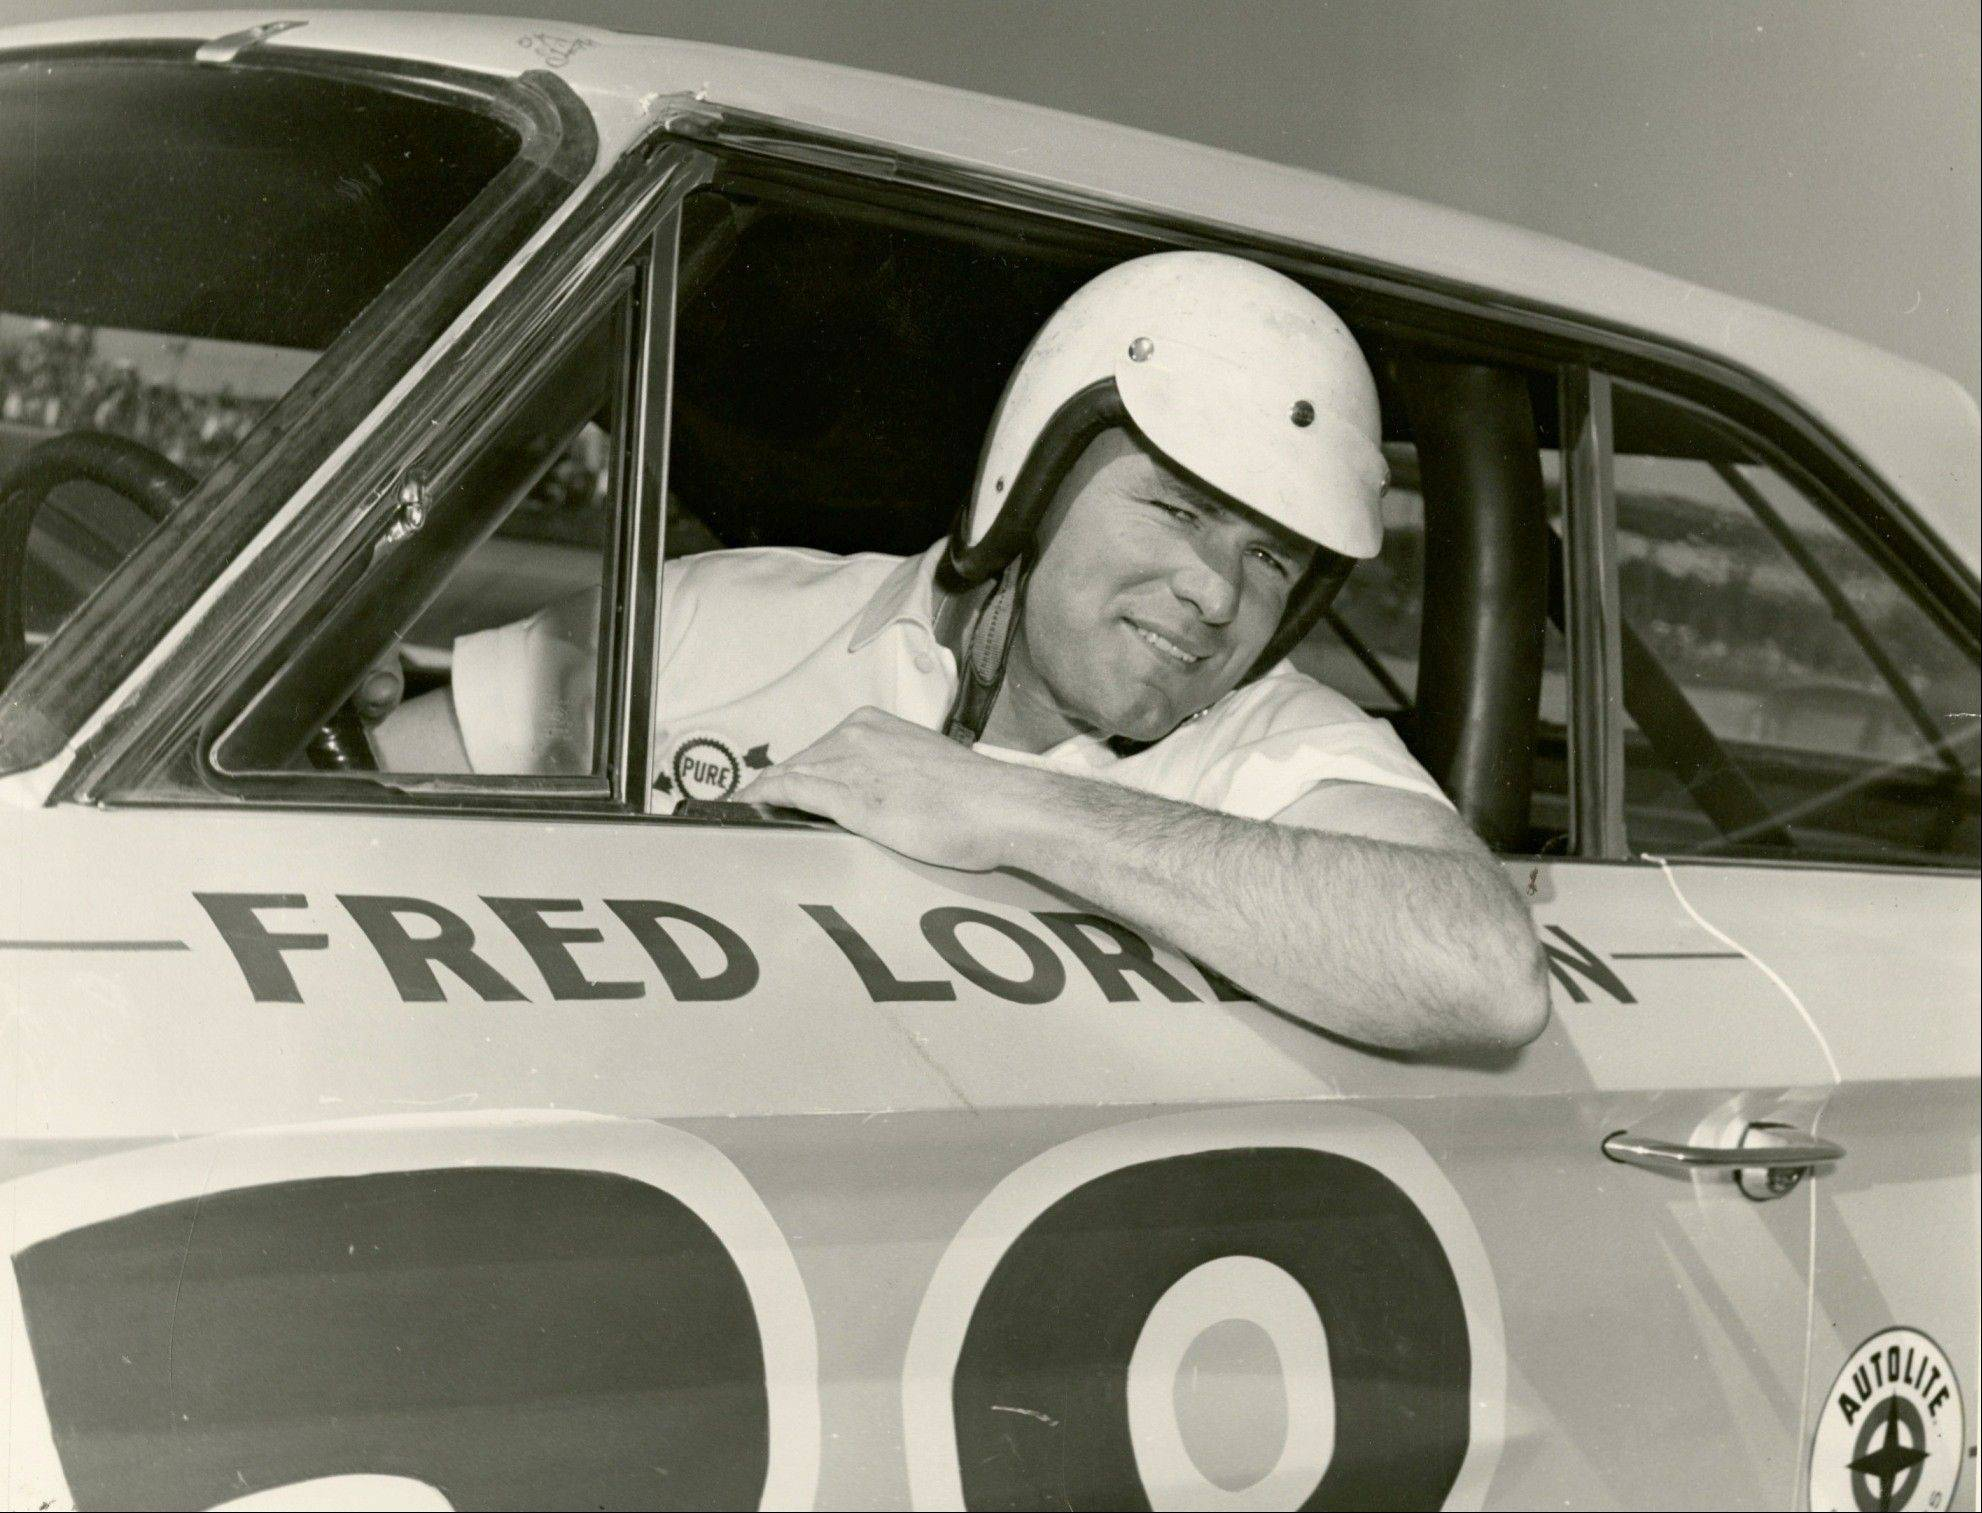 Elmhurst's Fred Lorenzen with his No. 28 Ford Galaxie was well-known on the NASCAR circuit and won the 1965 Daytona 500.